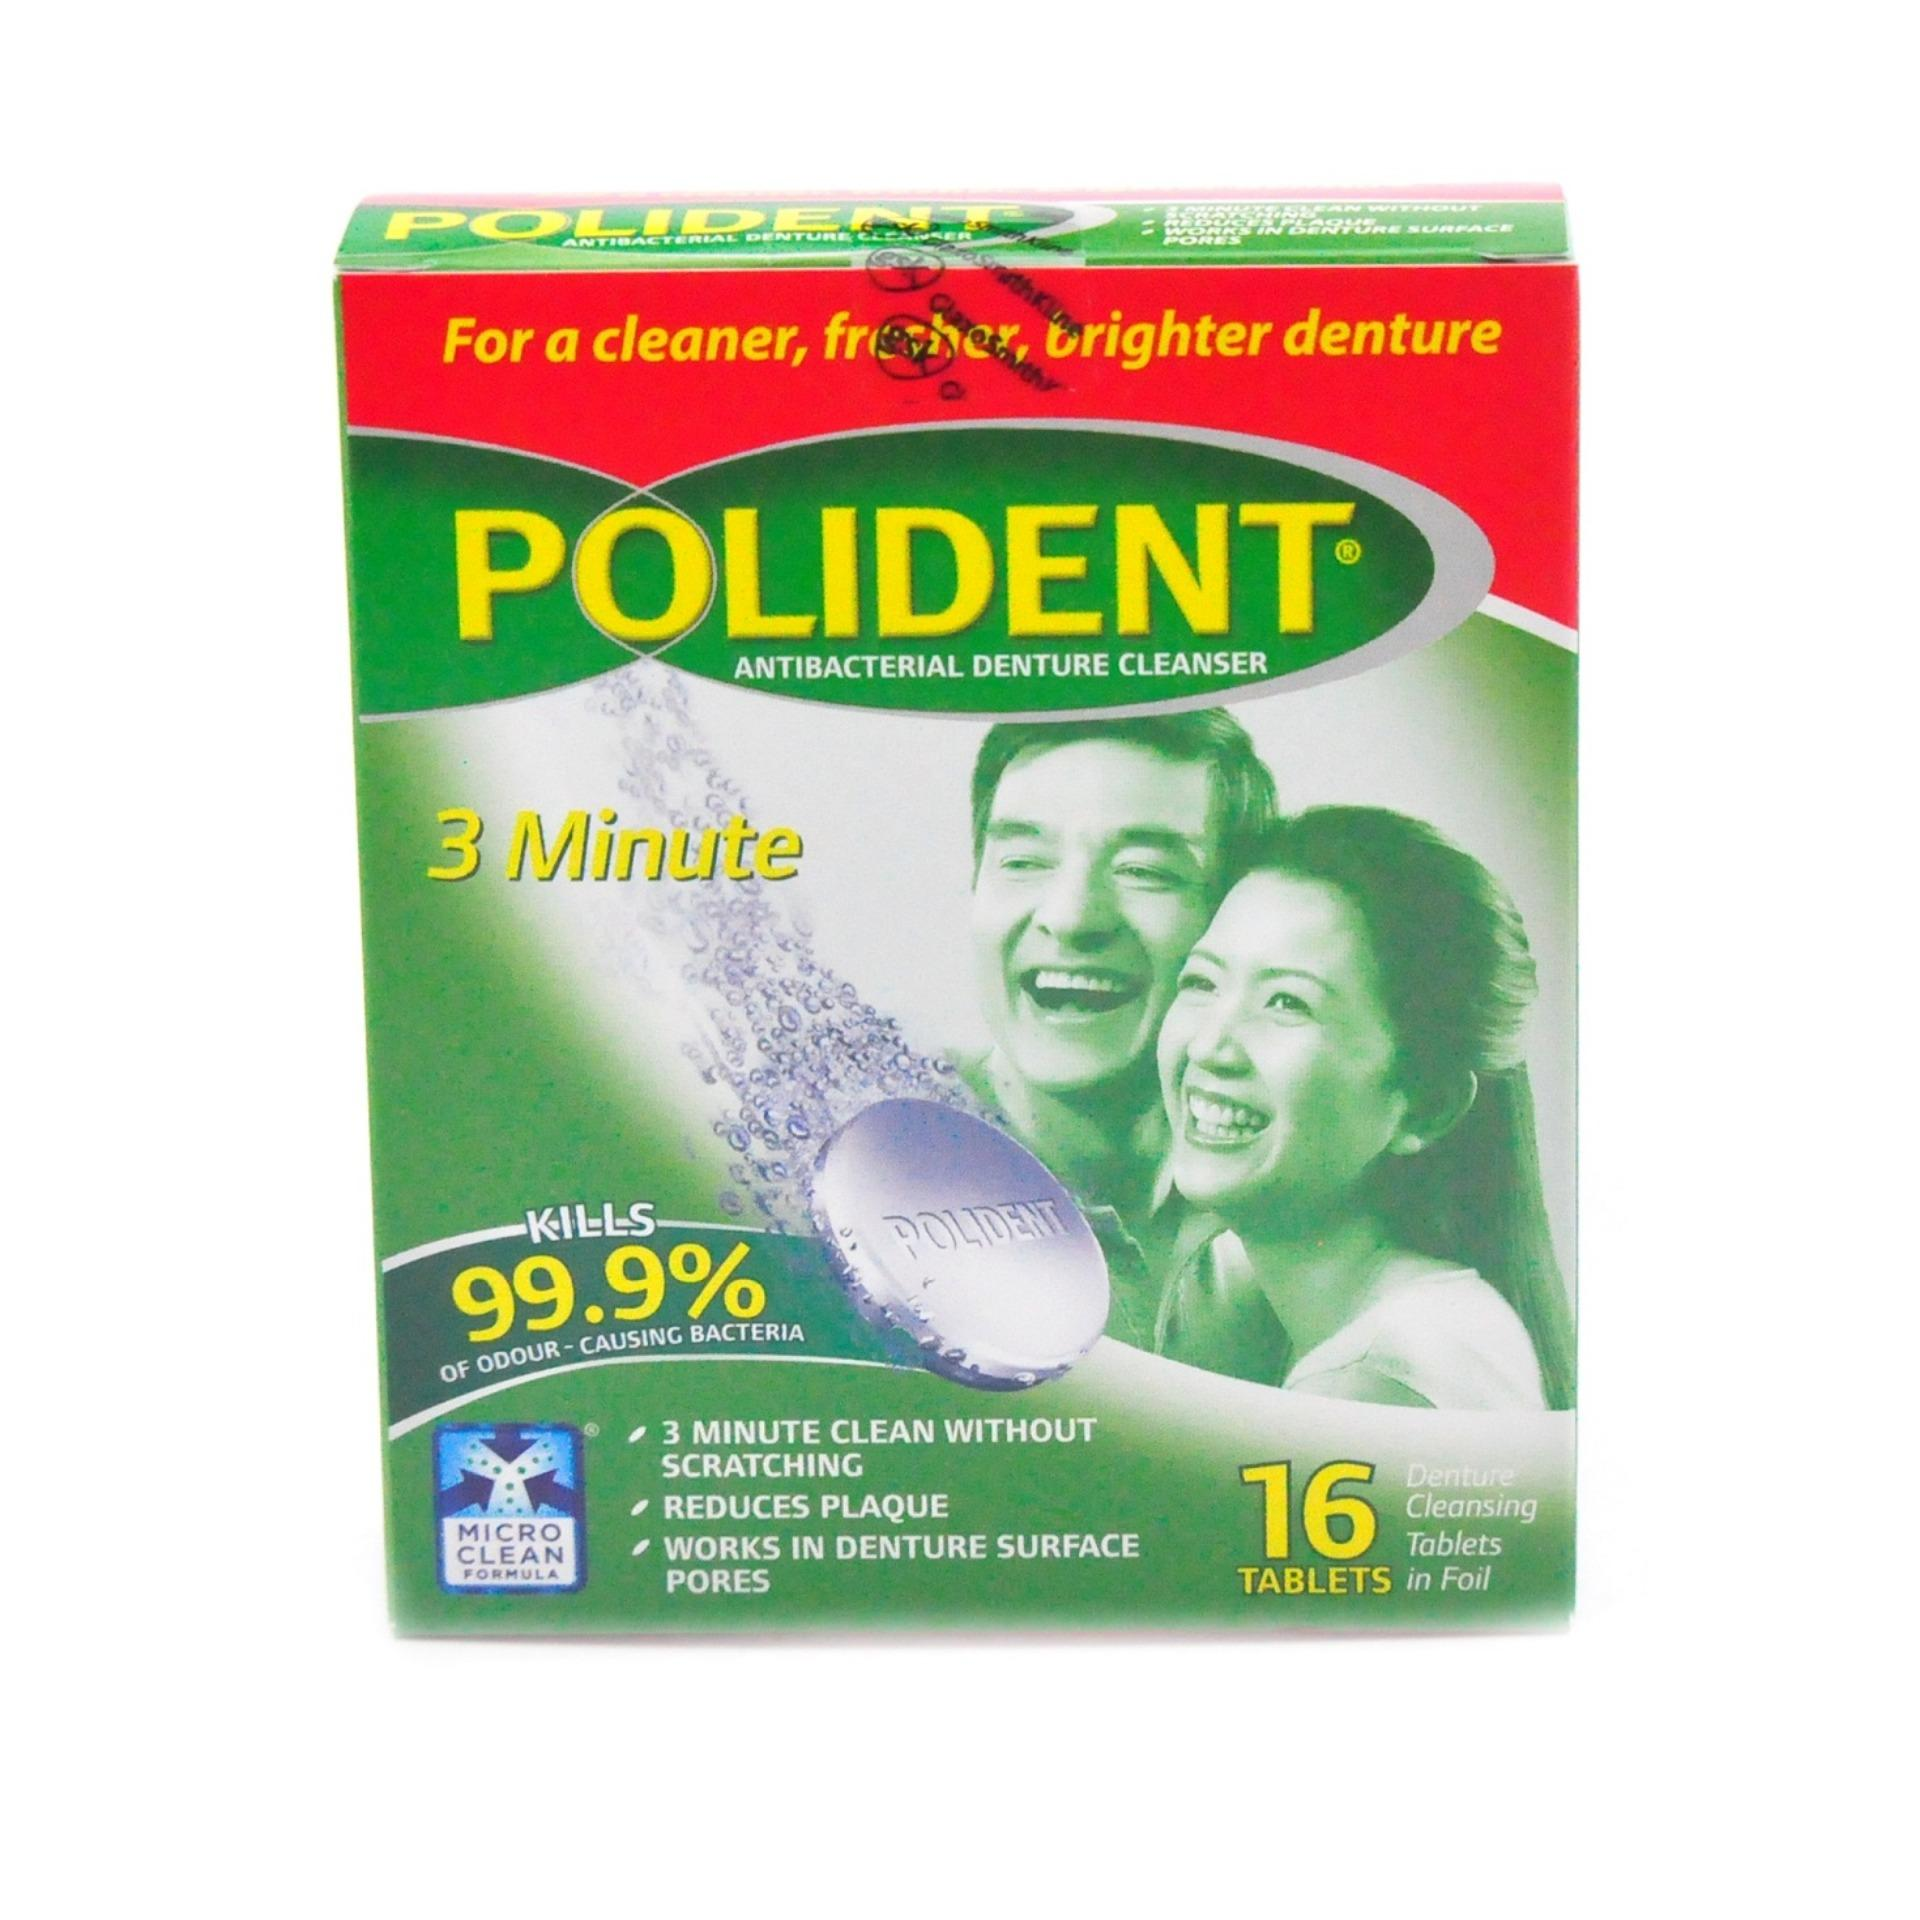 Philippines Polident 3 Minute Antibacterial Denture Cleanser 16 Tablets